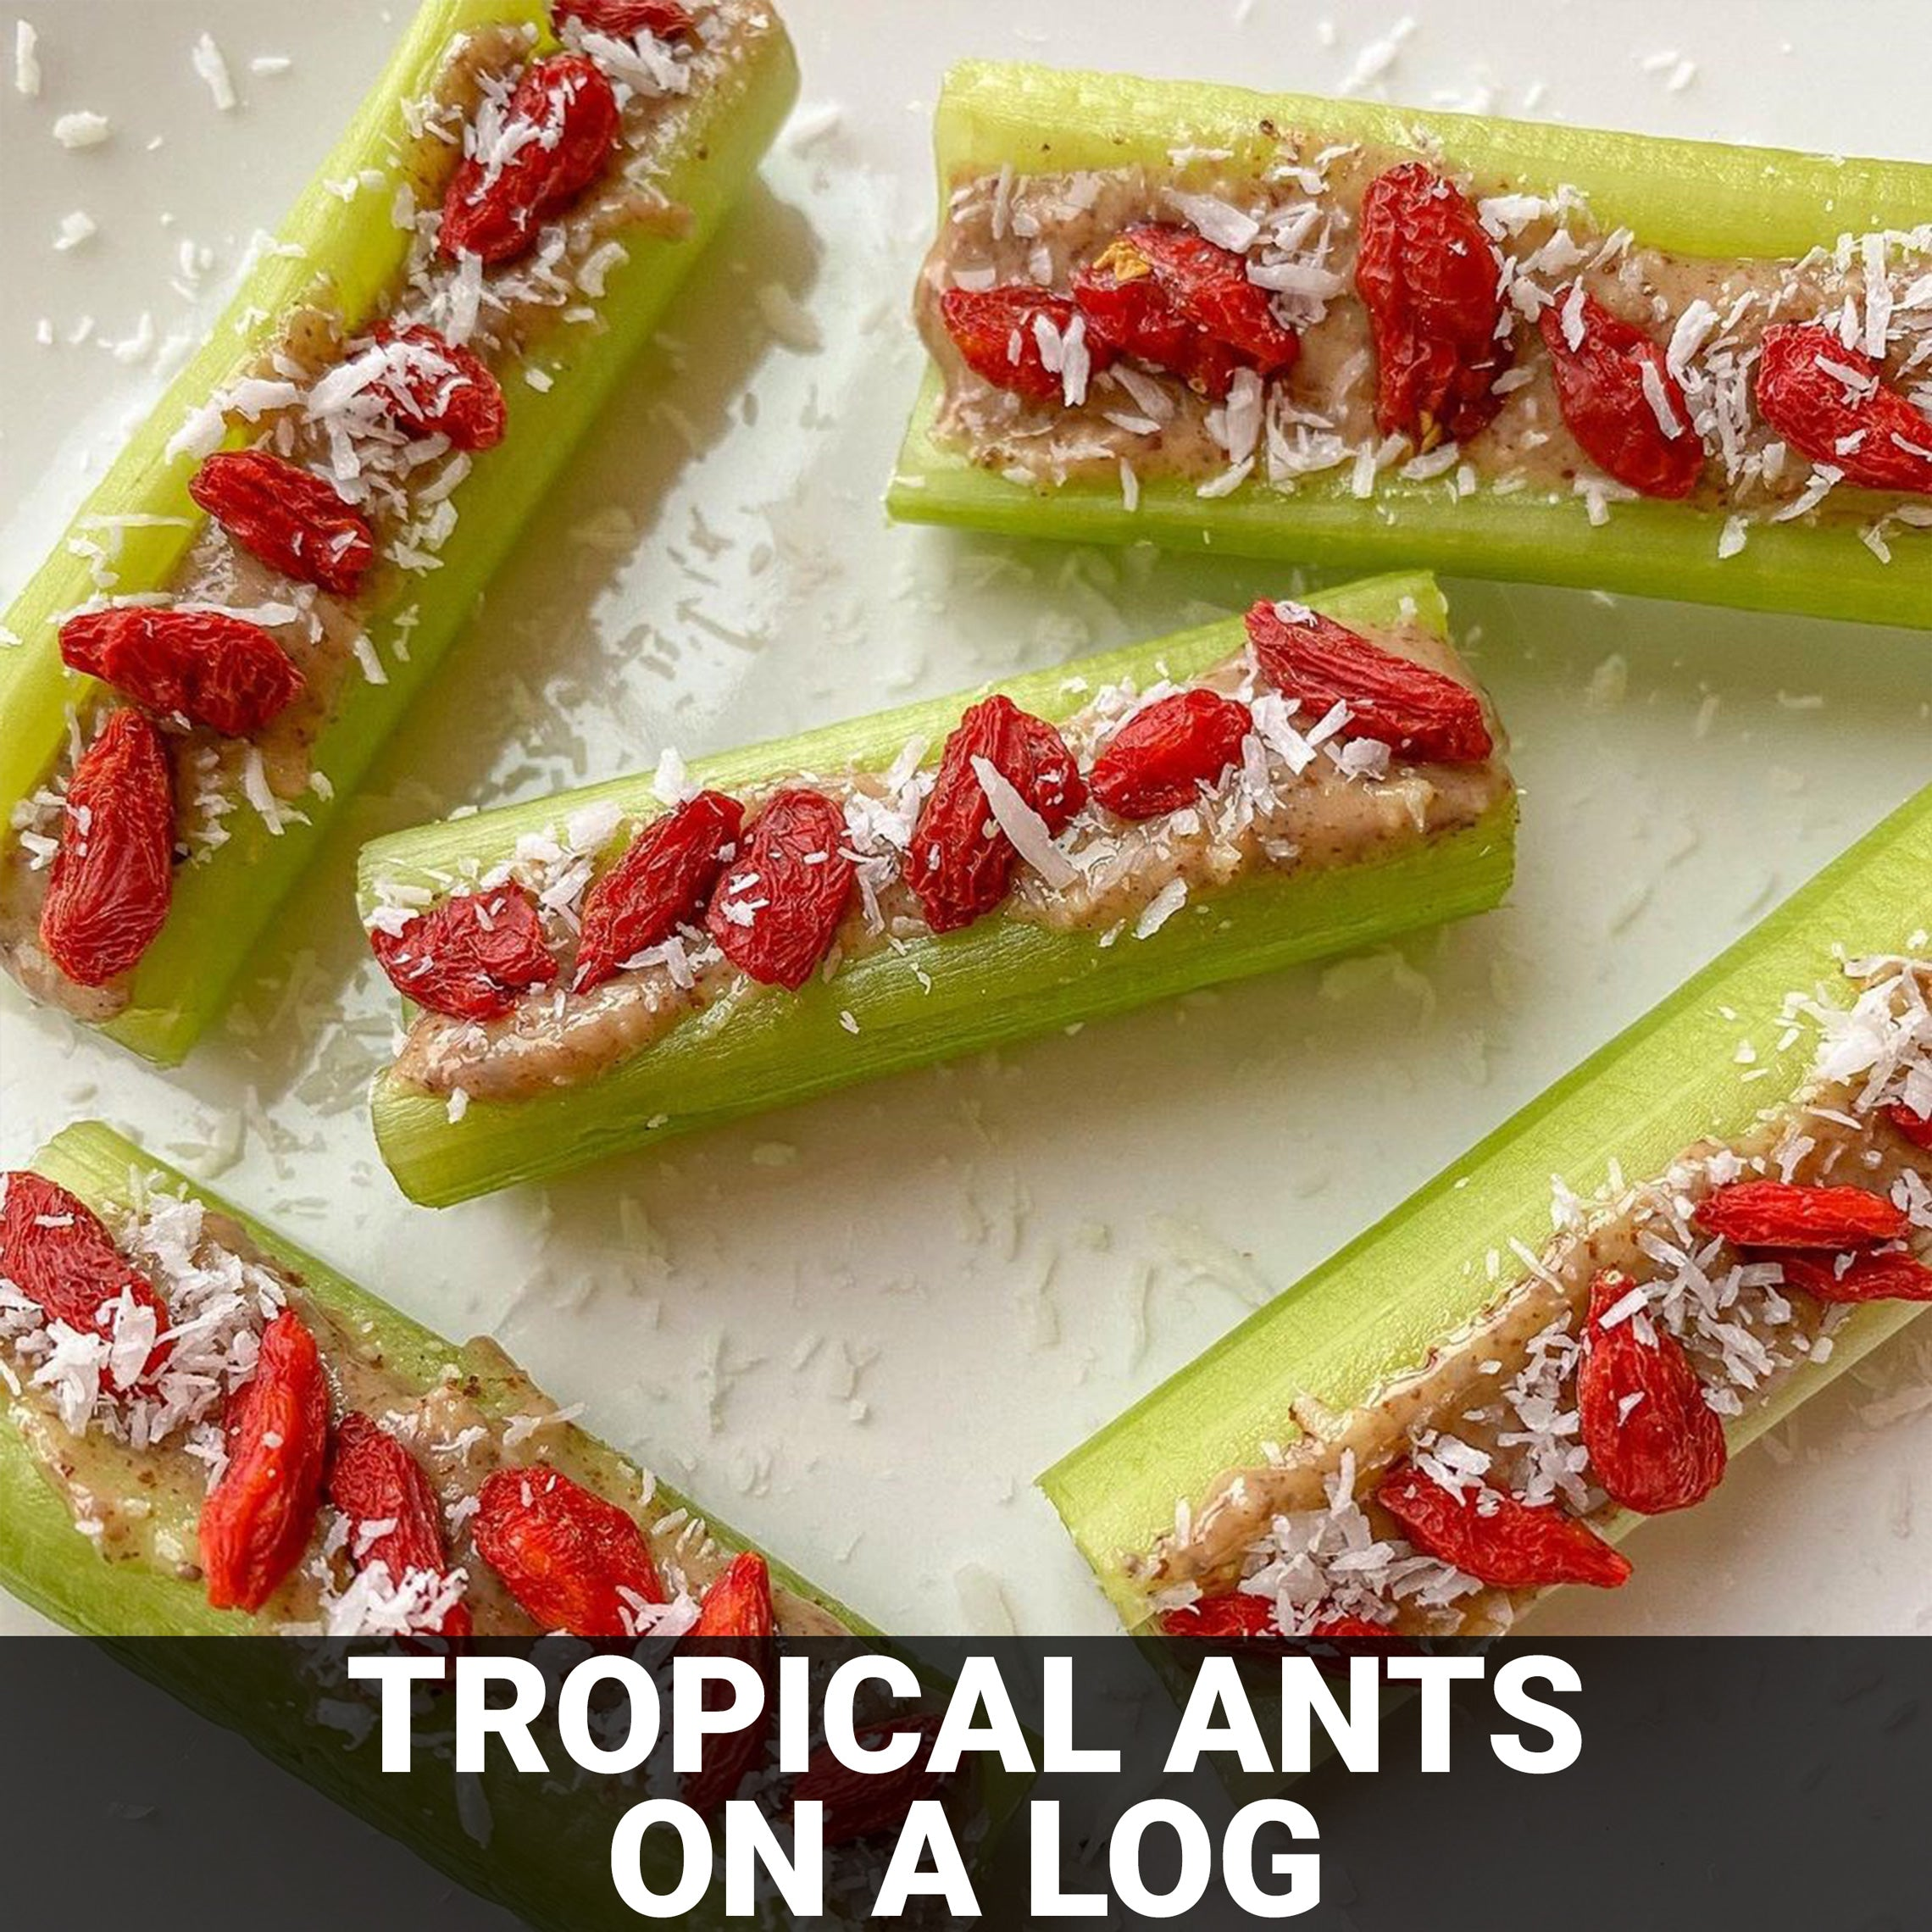 Tropical Ants On A Log Recipe - Foods Alive